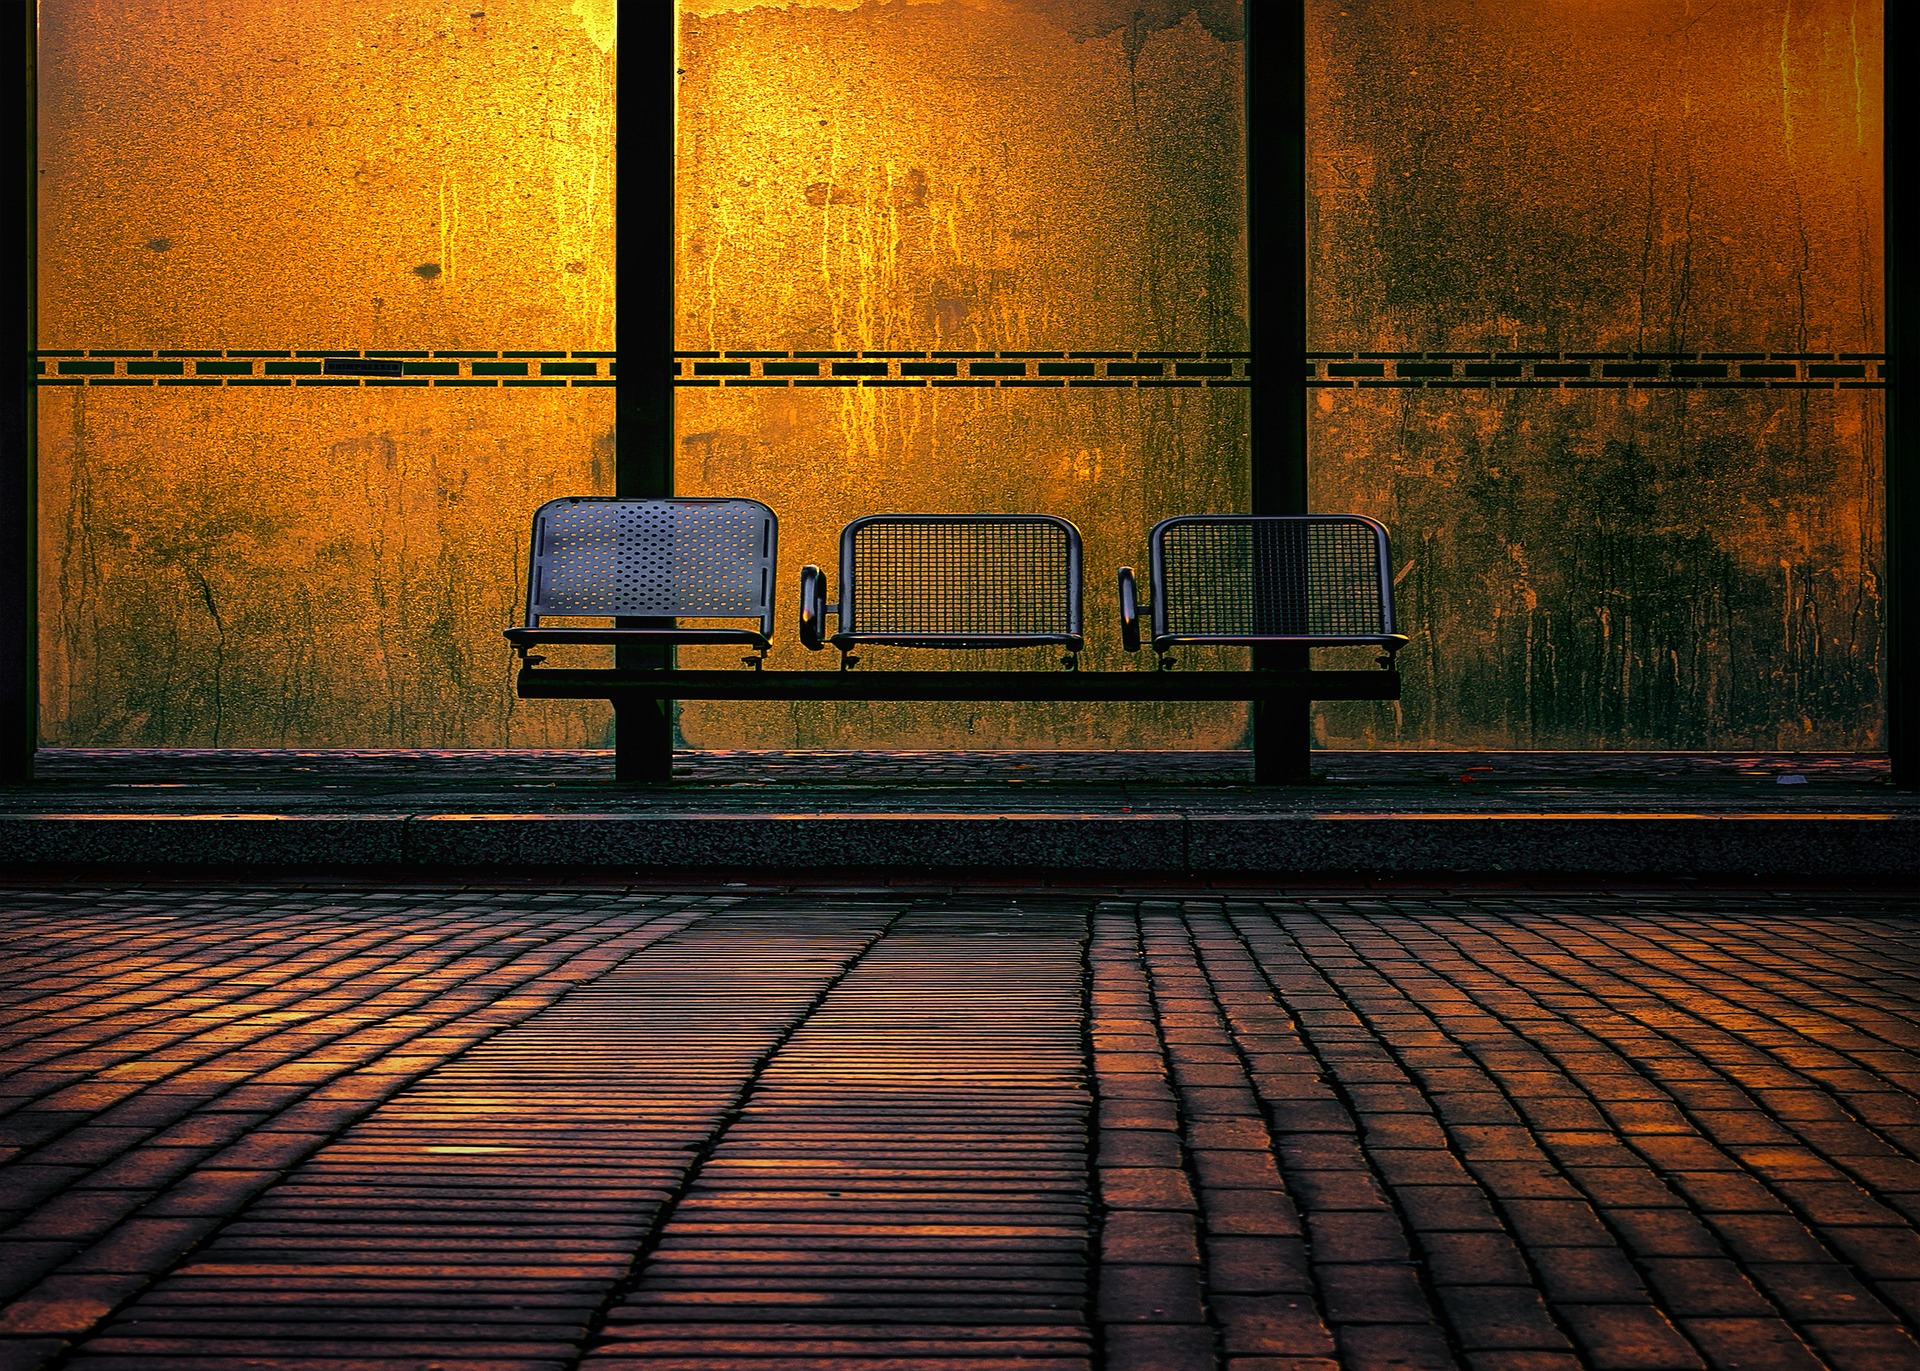 Image of empty seats at a bus stop at night, with a yellow light in the background